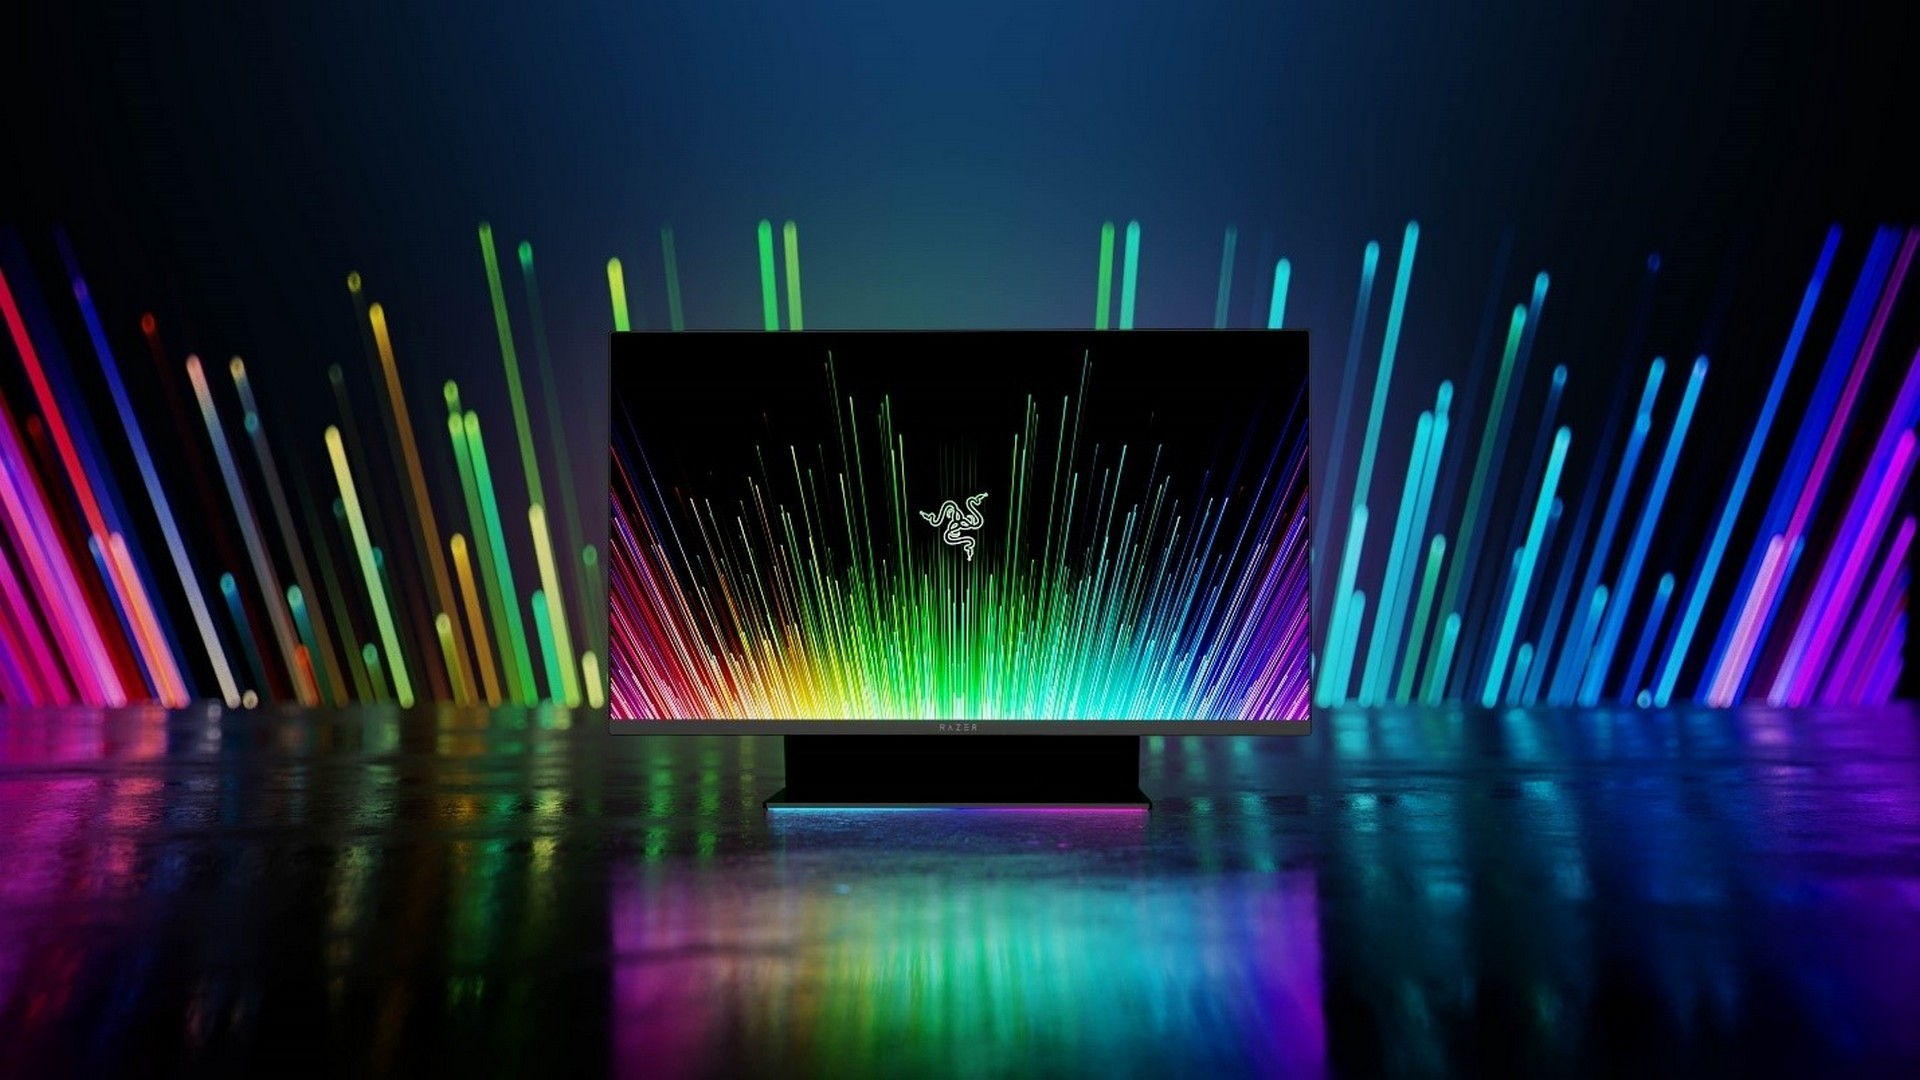 Razer Announces The New Raptor 27 – The World's First THX Certified PC Monitor